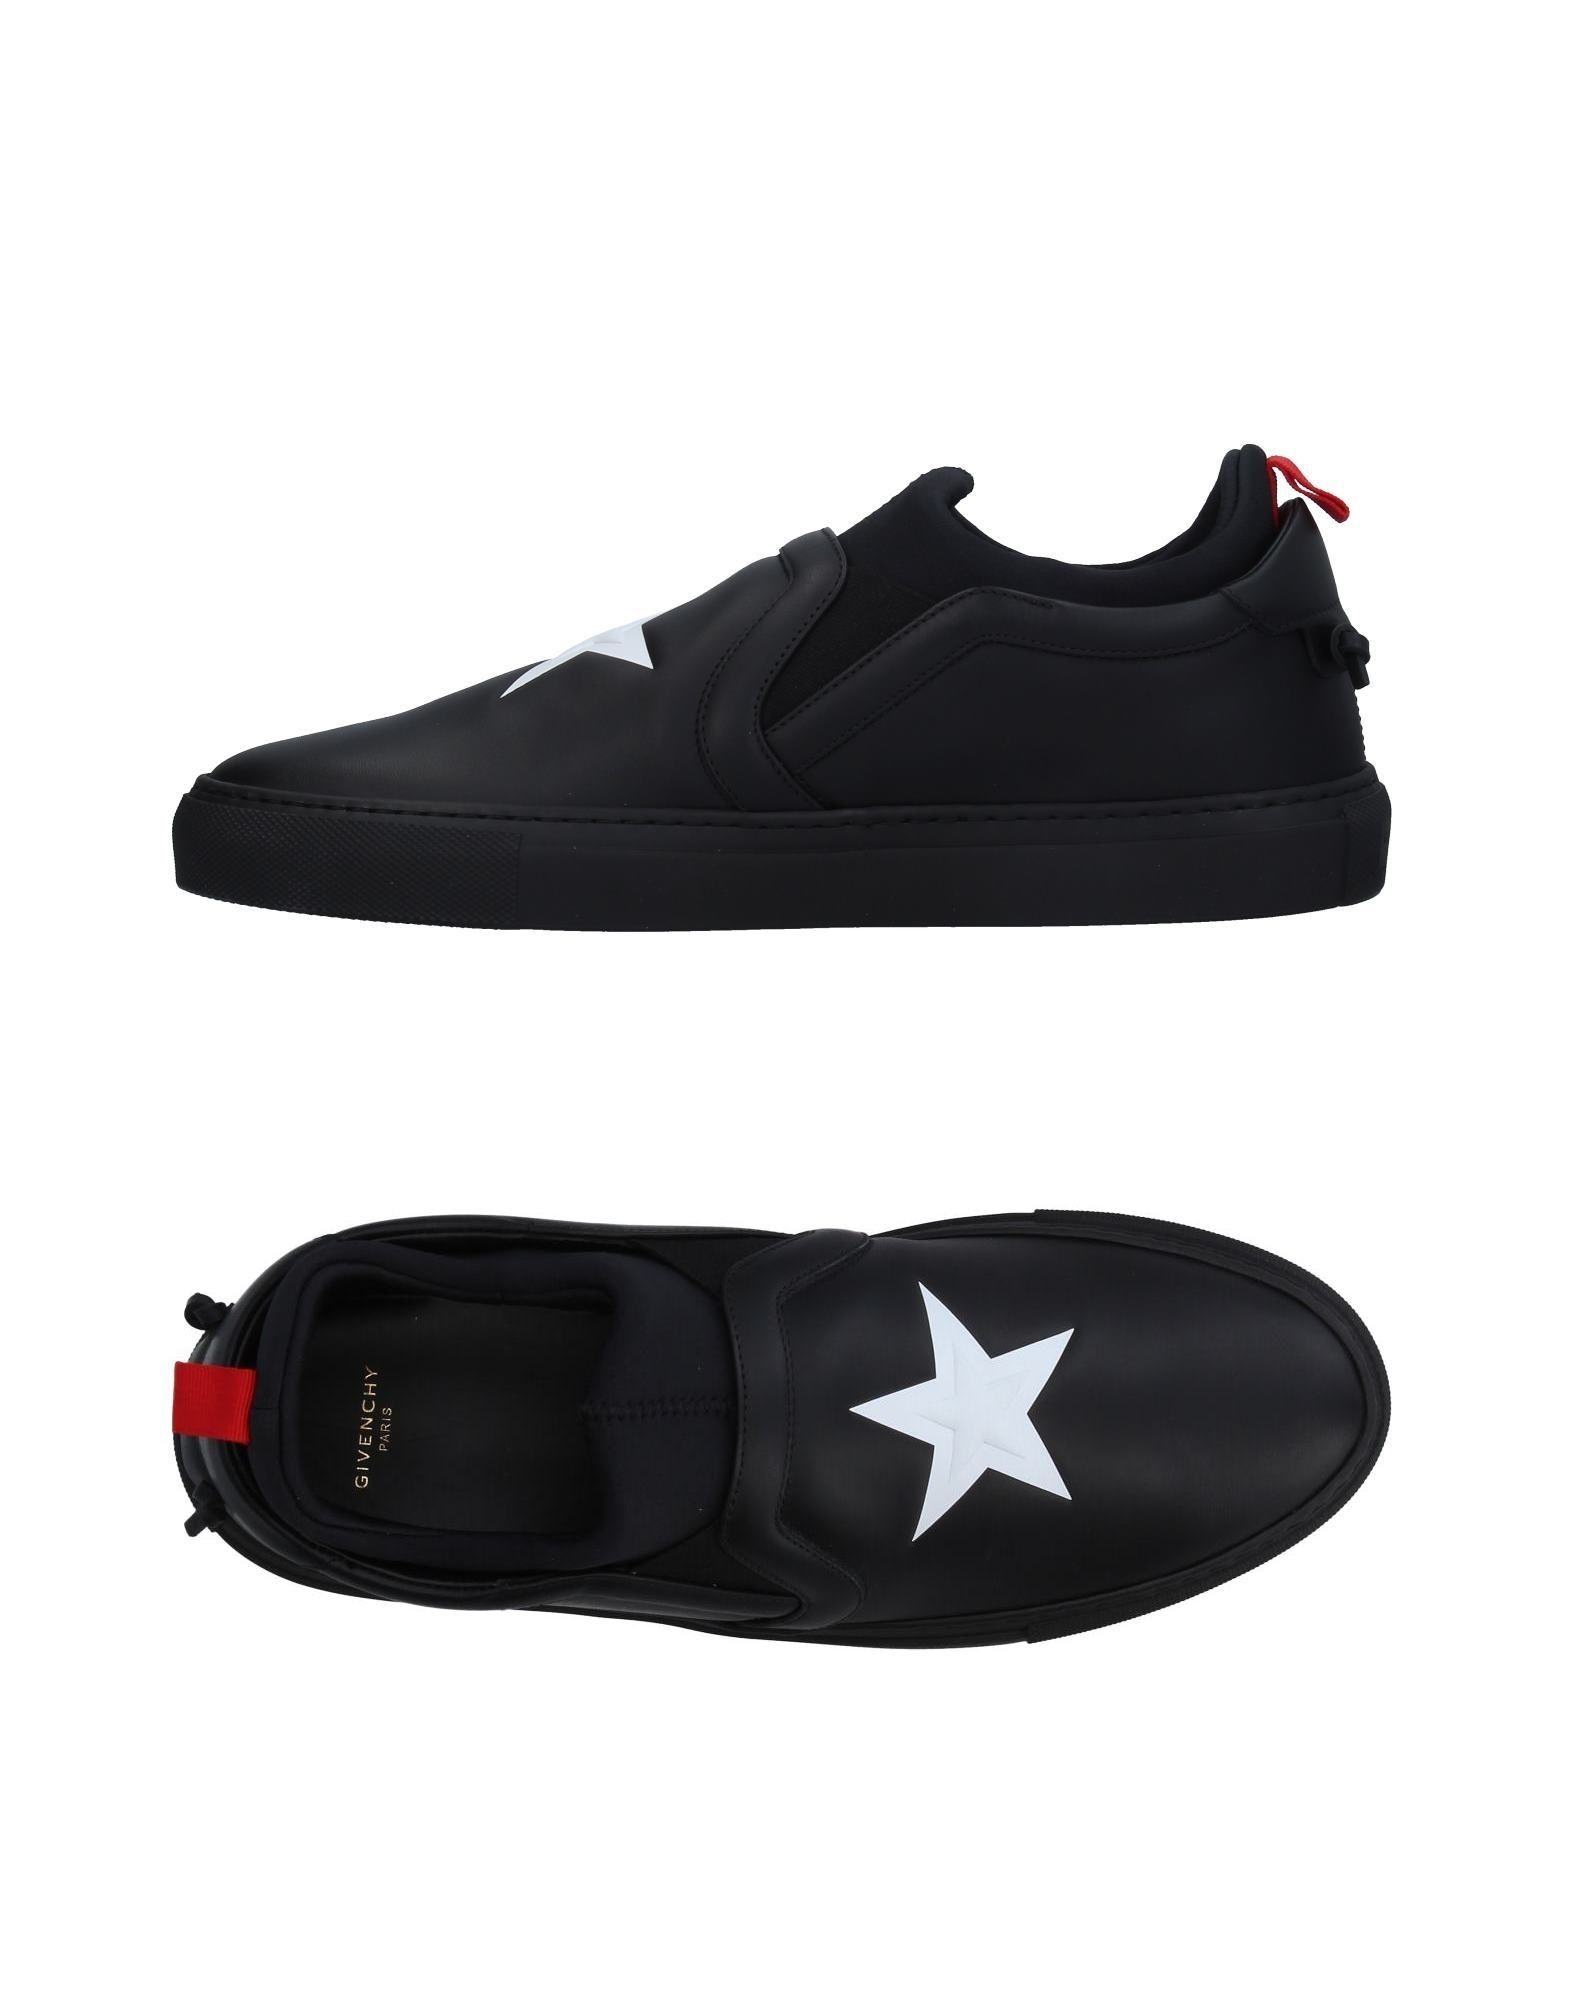 Sneakers Givenchy Uomo - Acquista online su